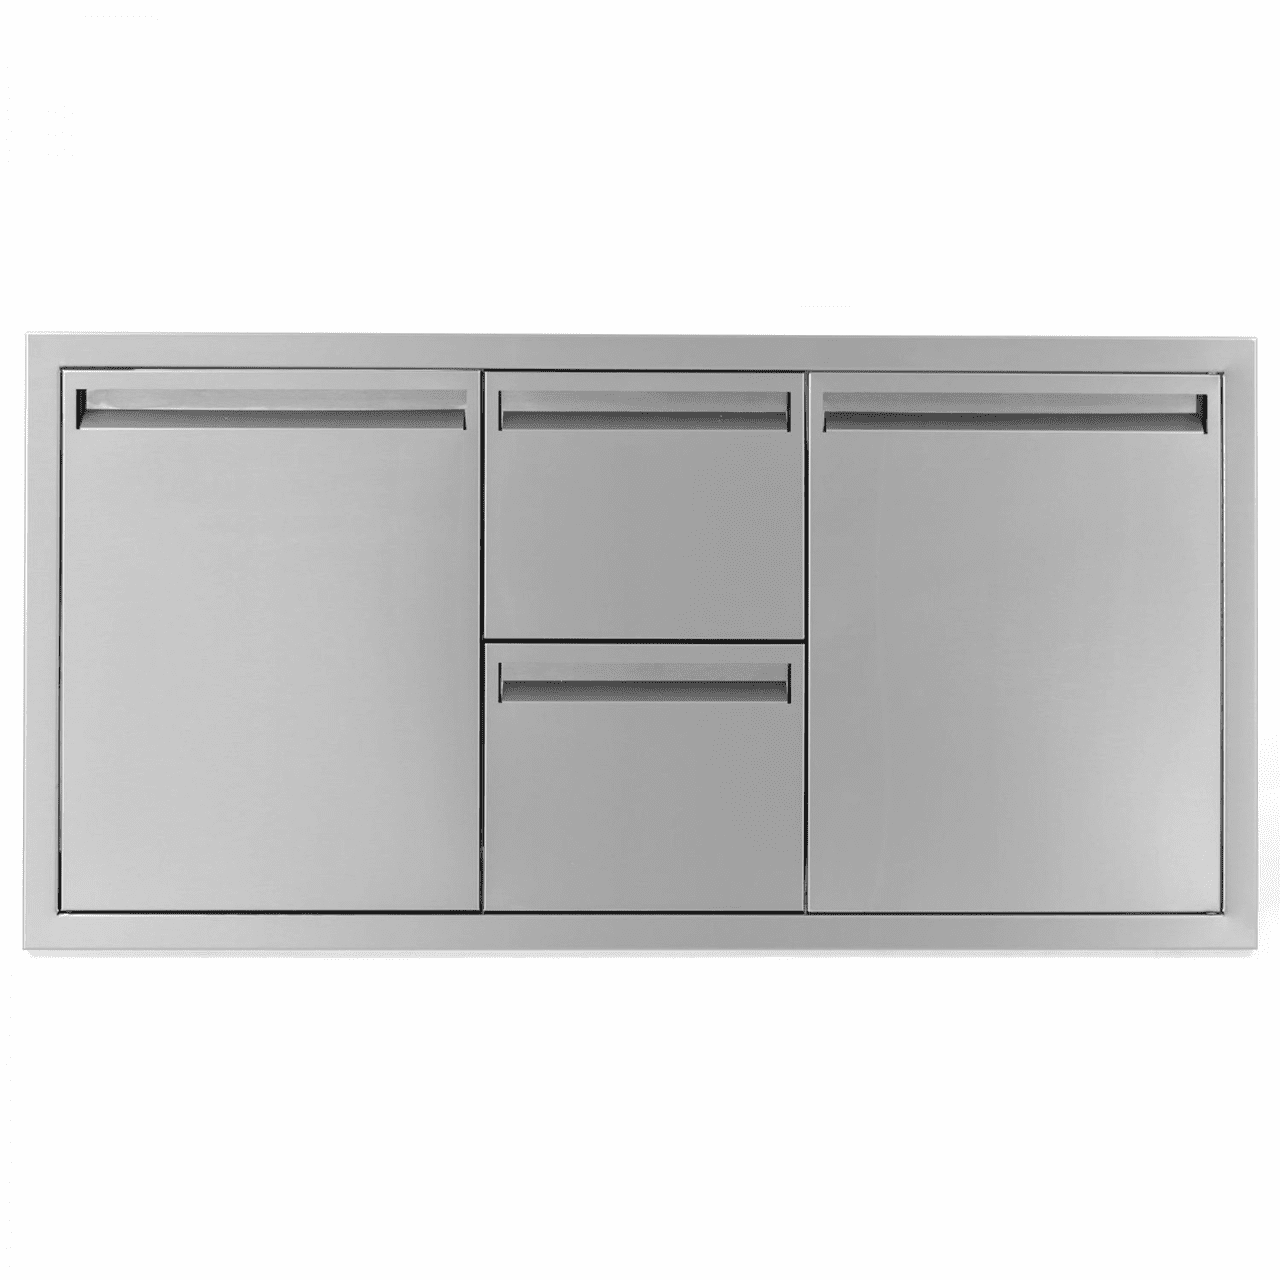 PCM 301 Series 1 Door 2 Drawer 1 trash-propane drawer 42 inch Combo